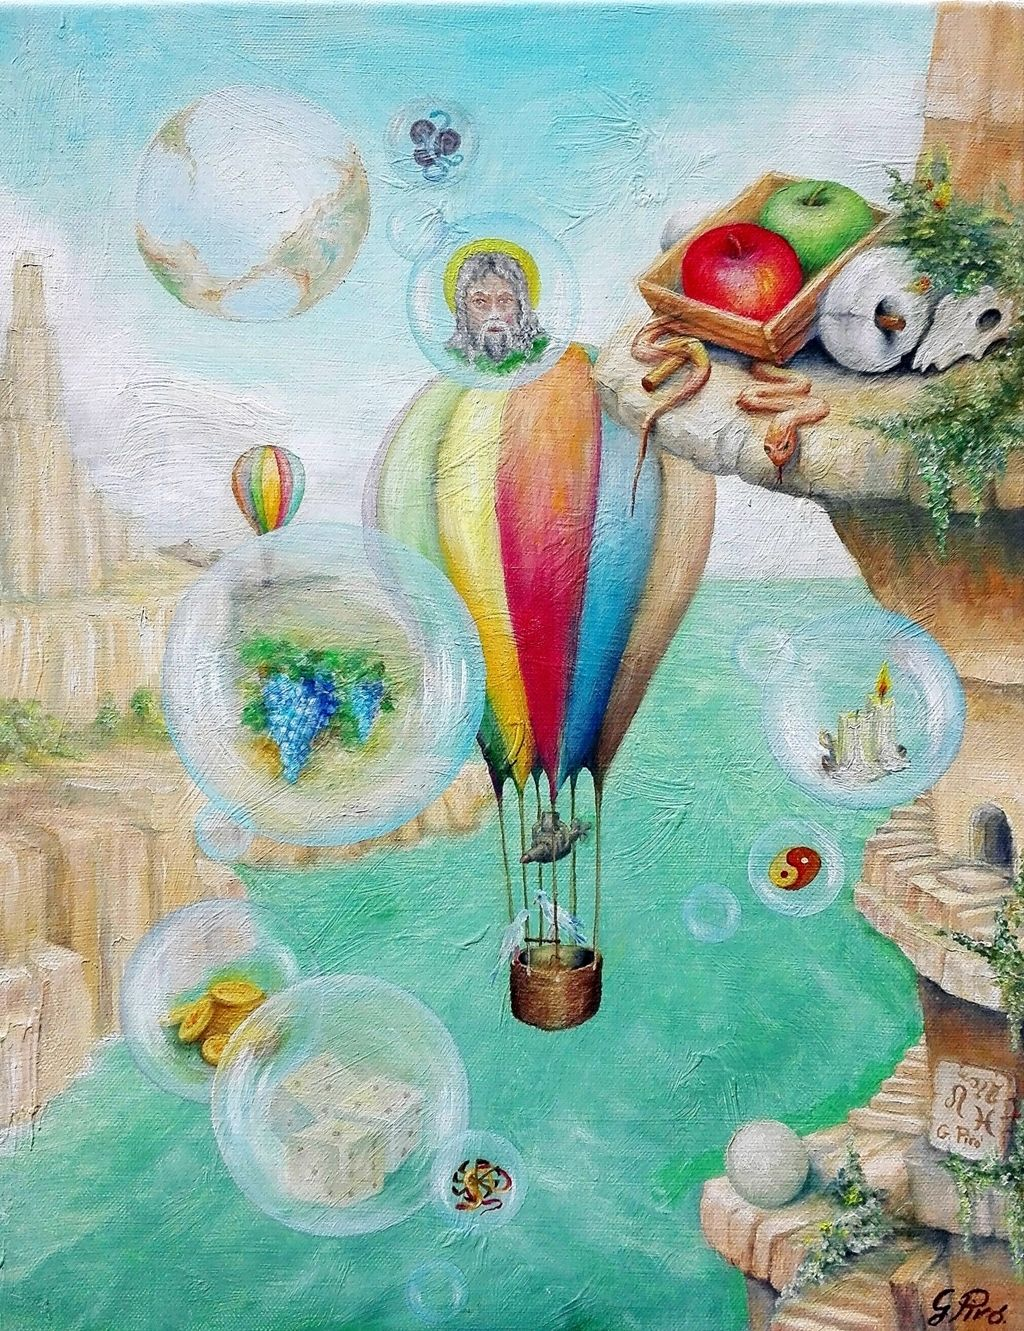 Oil Painting, Surrealism, Gregory Pyra Piro